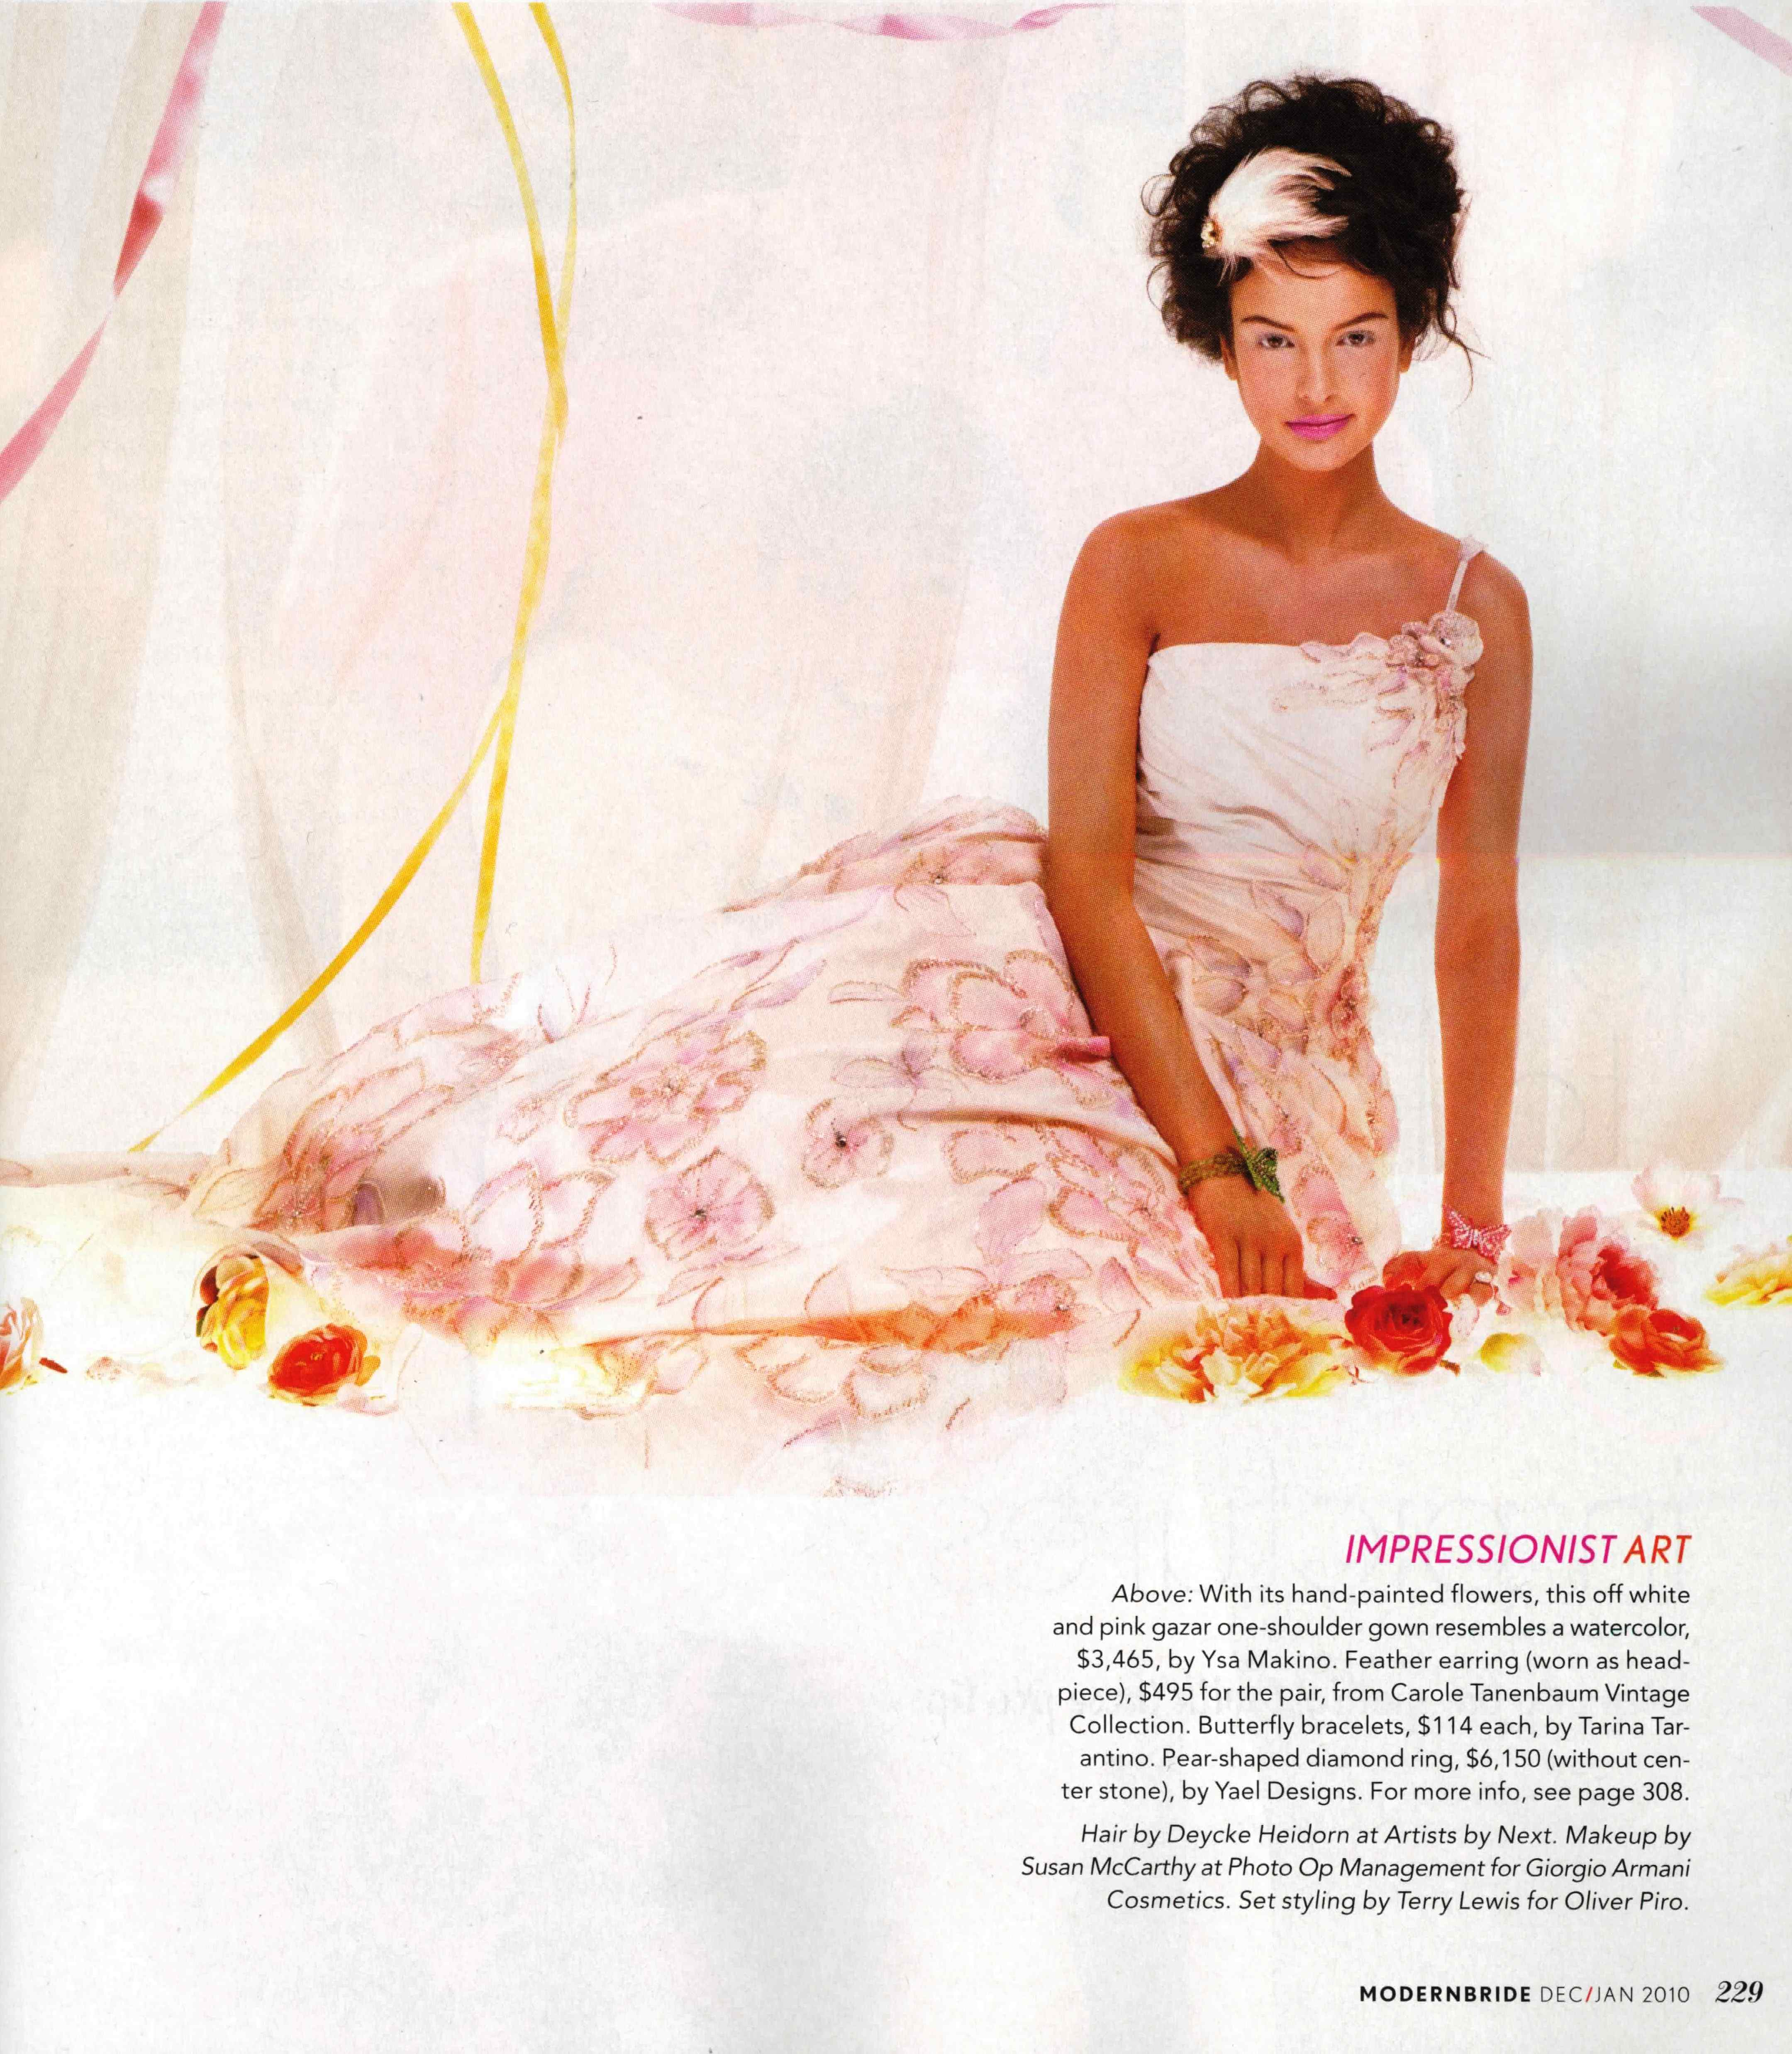 Engagement ring by Yael Designs featured on a model in Modern Bride Nov/Dec 2009 issue